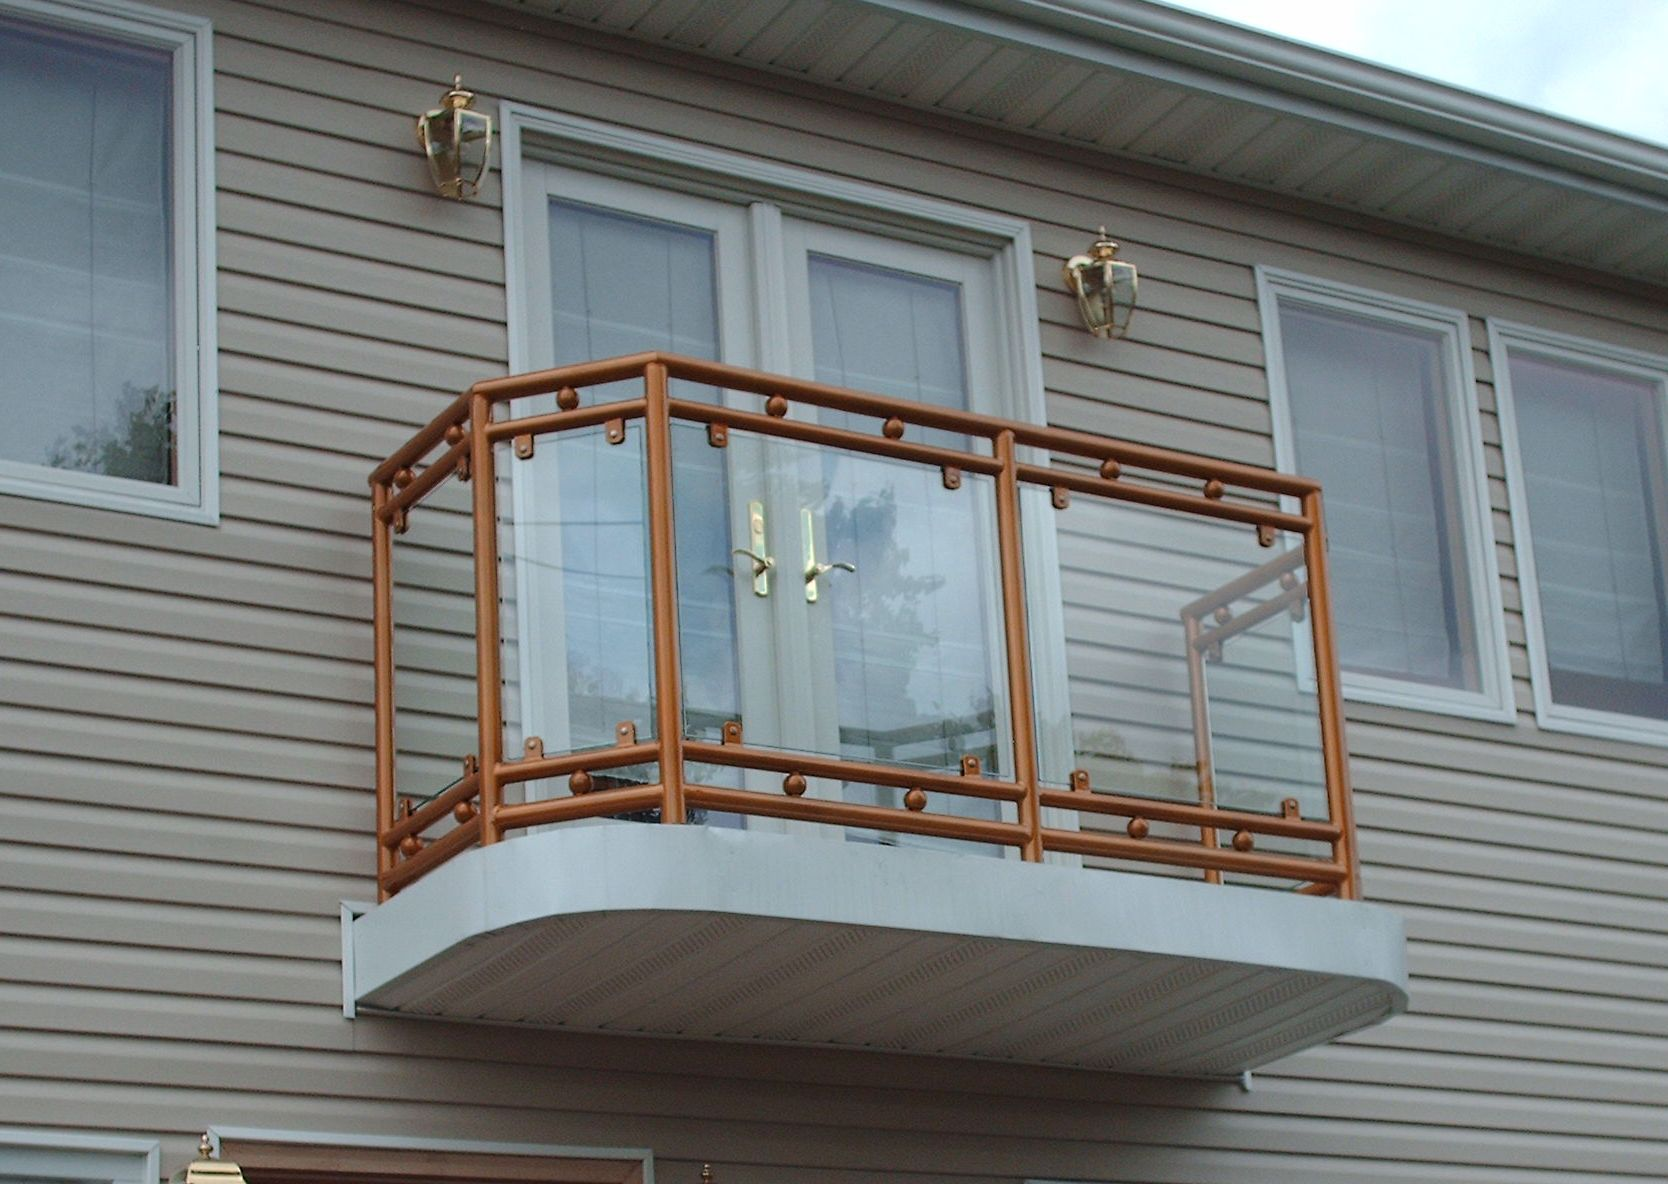 Guardian gate balcony balconies pinterest balcony for Balcony design